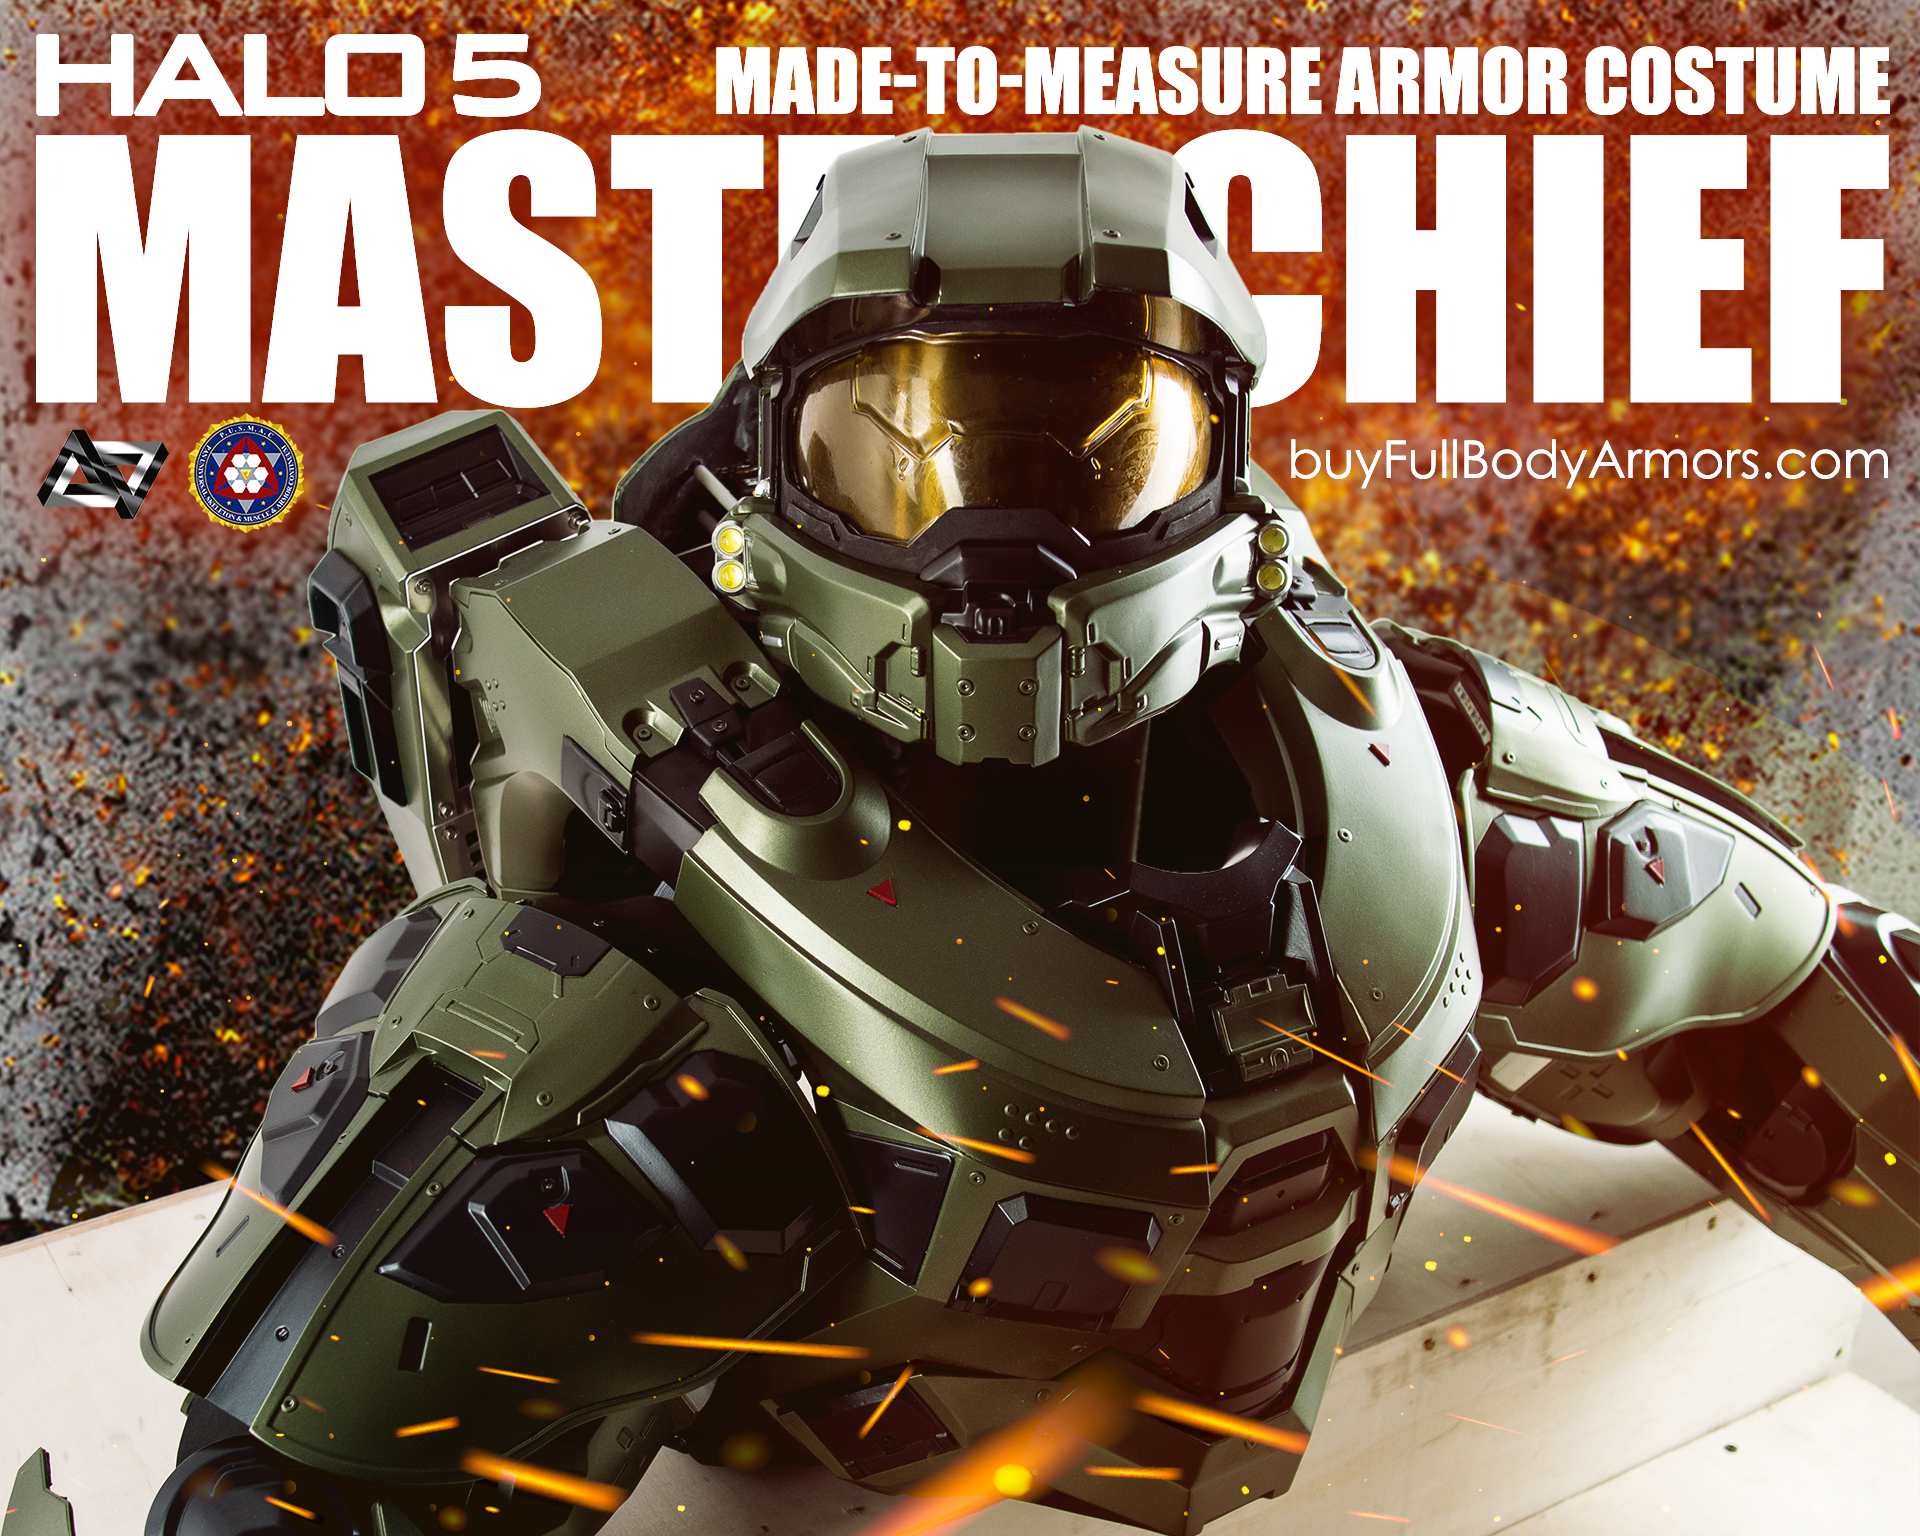 Halo 5 Master Chief Armor Suit Costume on crate 1